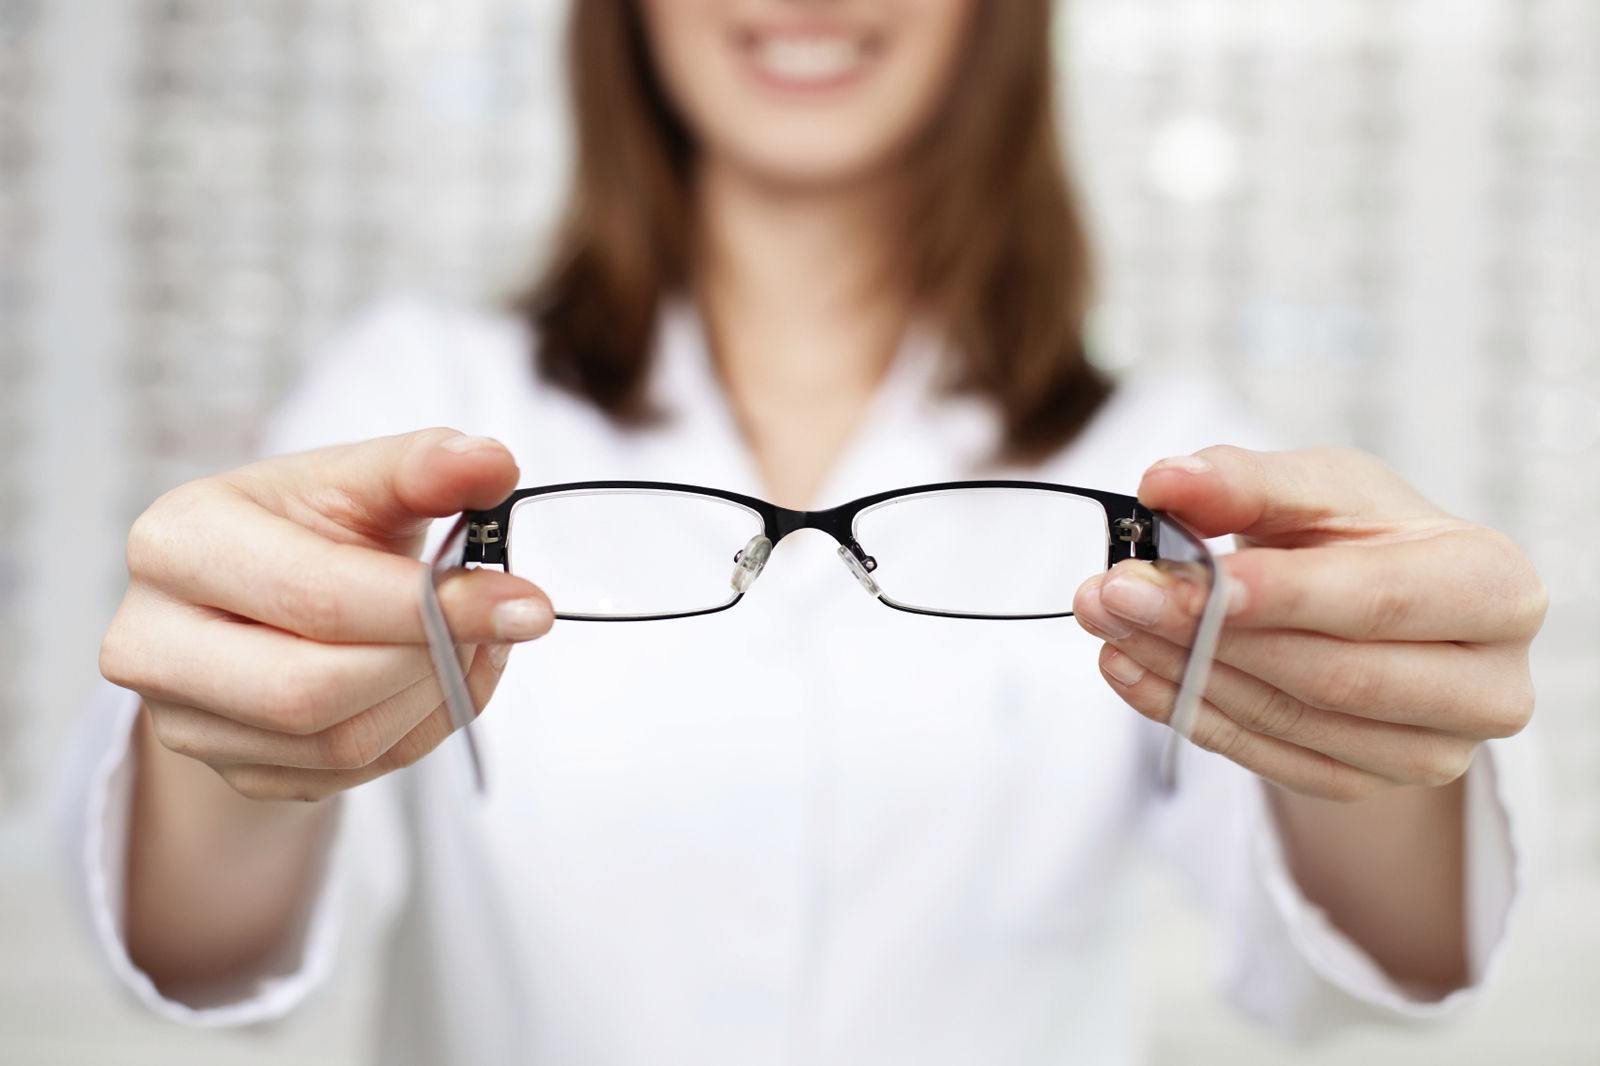 If you're in need of a lens prescription come see our optometrist in Winnipeg. Call us today to make an appointment!